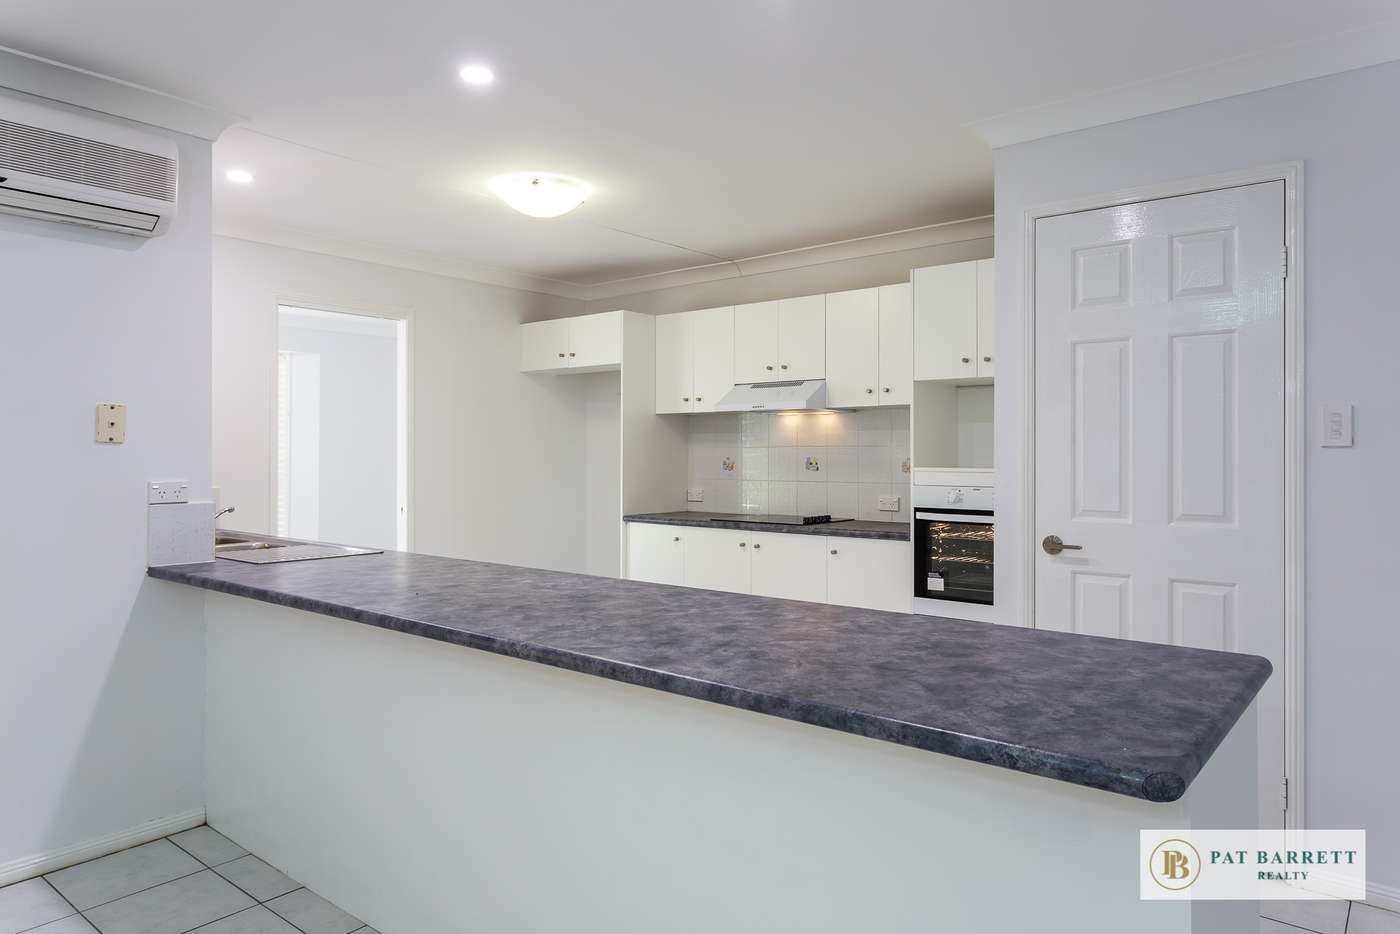 Fifth view of Homely house listing, 11 Leicester Street, Birkdale QLD 4159